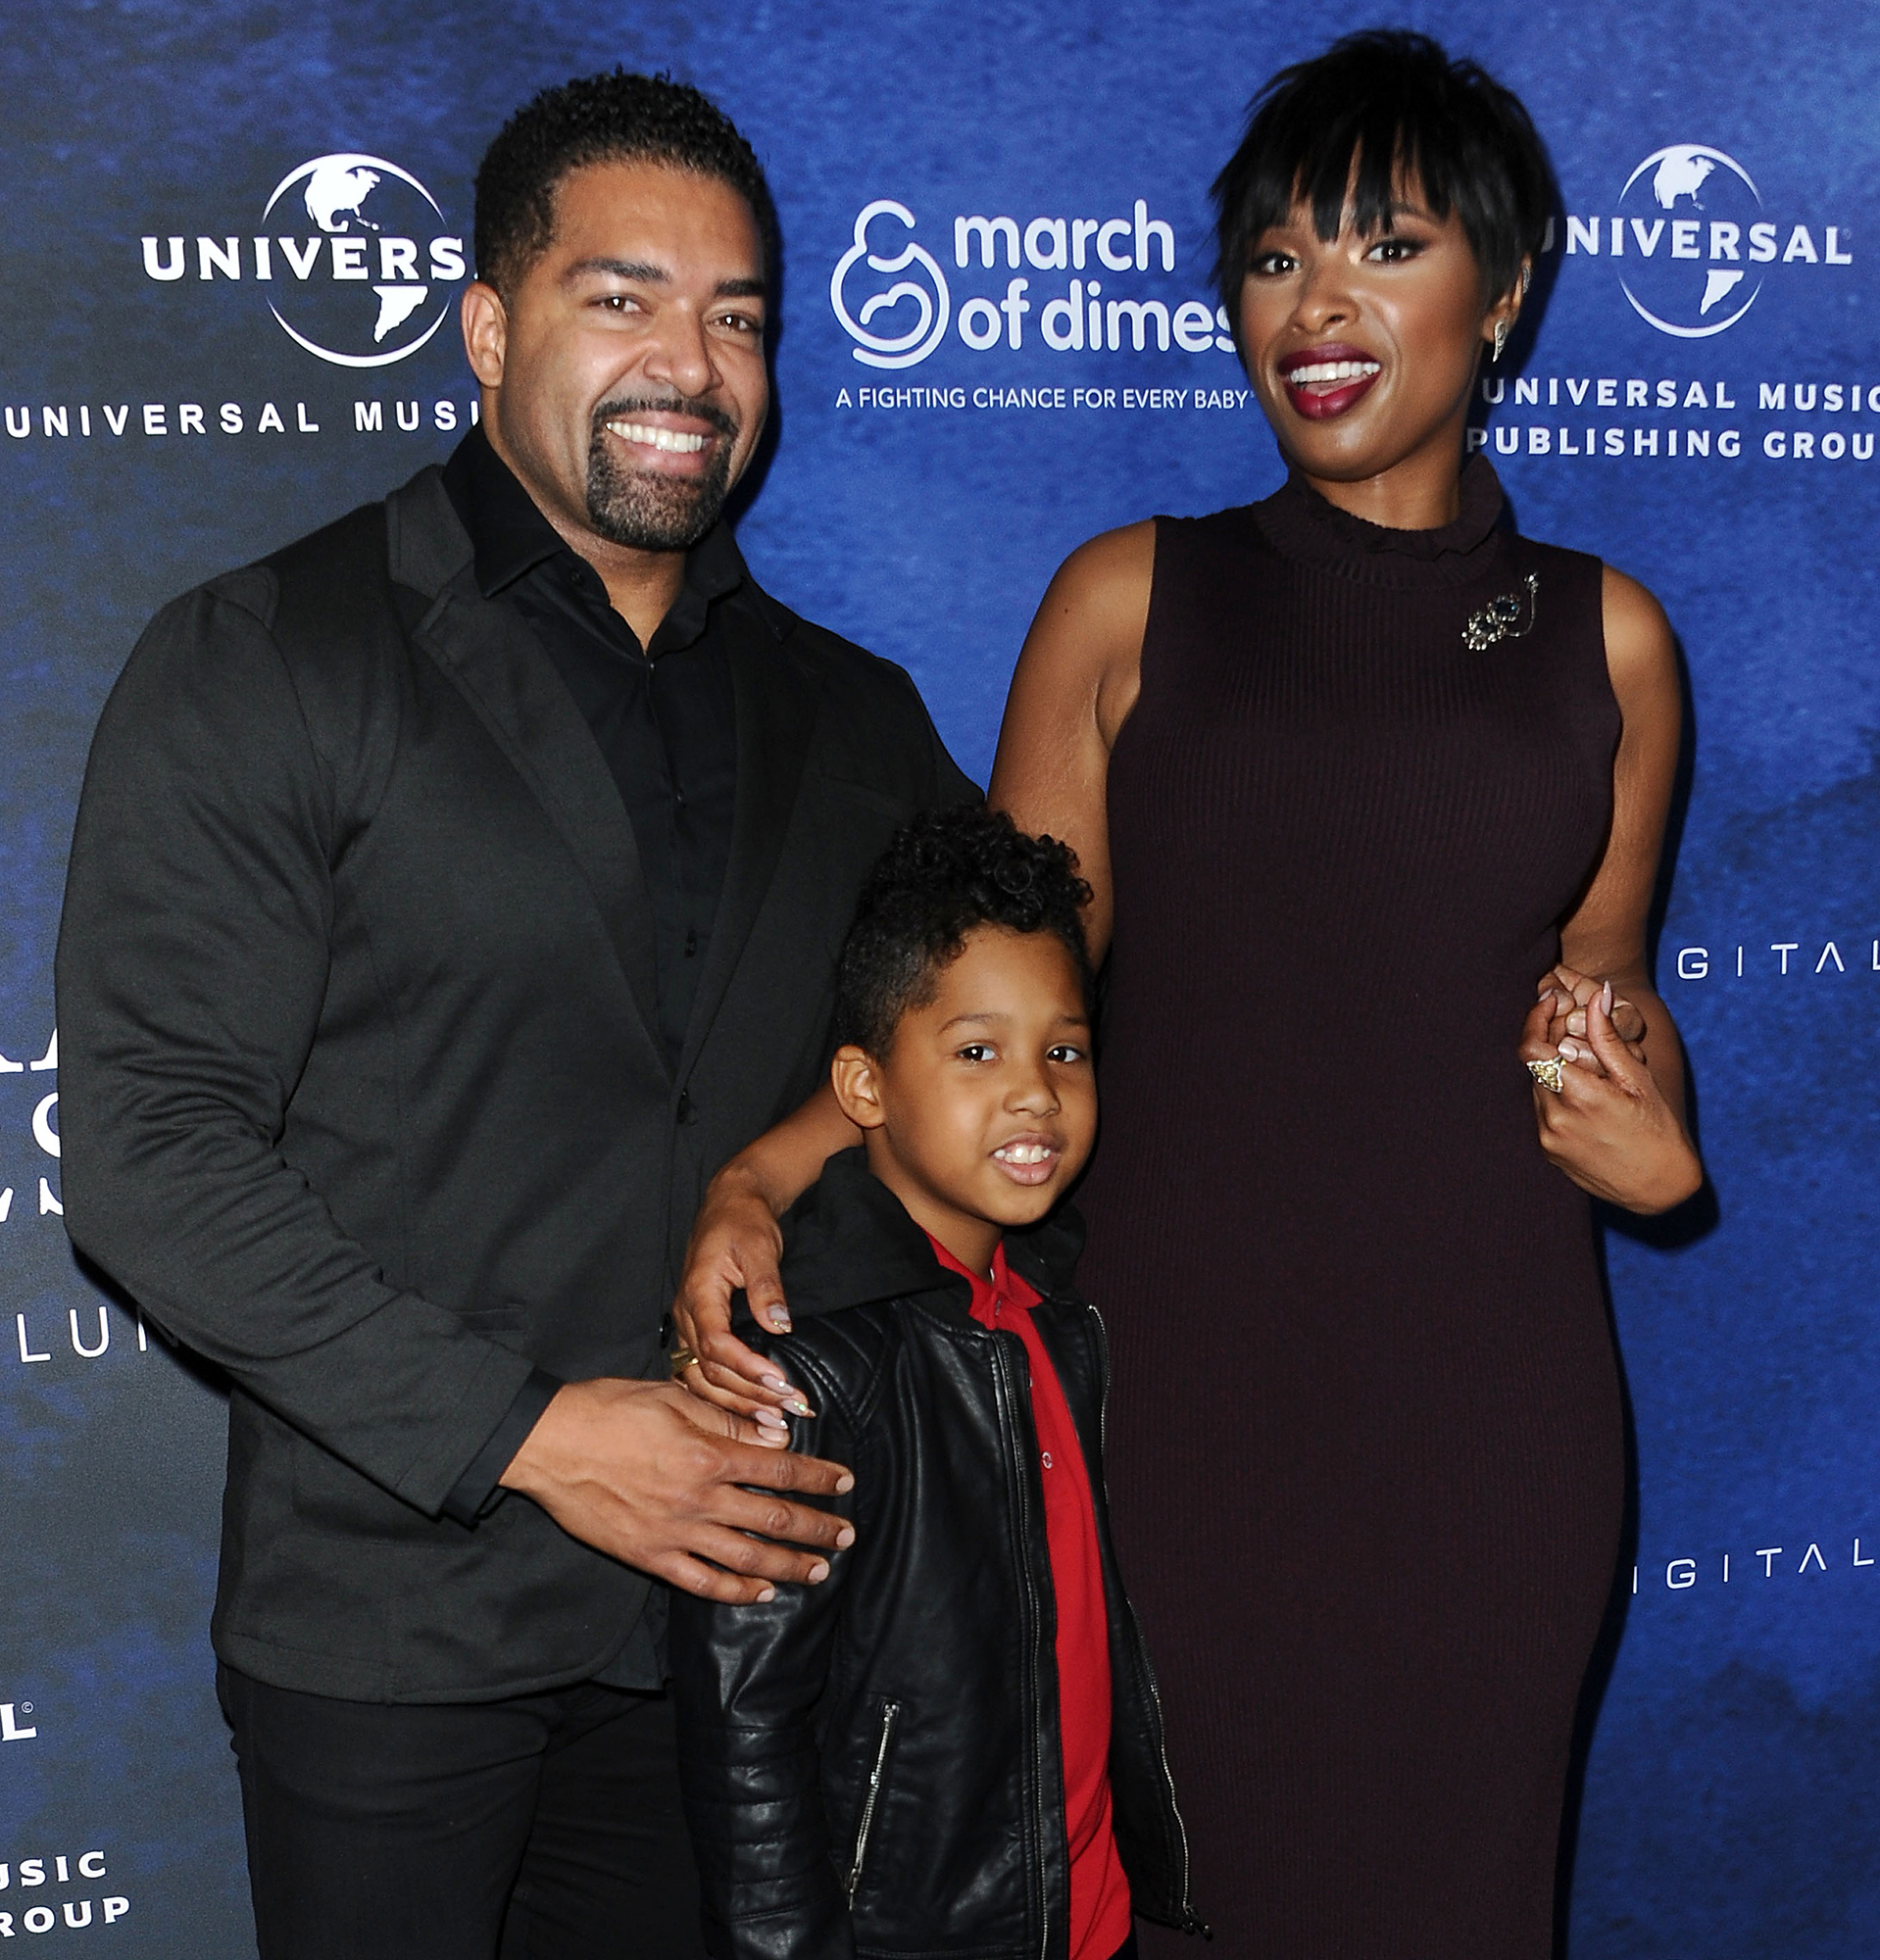 David Otunga Reveals the Ways His 9-Year-Old Son With Ex Jennifer Hudson Takes After Him - David Otunga, Jennifer Hudson and son David Otunga Jr. attend the 2016 March of Dimes Celebration of Babies at the Beverly Wilshire Four Seasons Hotel on December 9, 2016 in Beverly Hills, California.